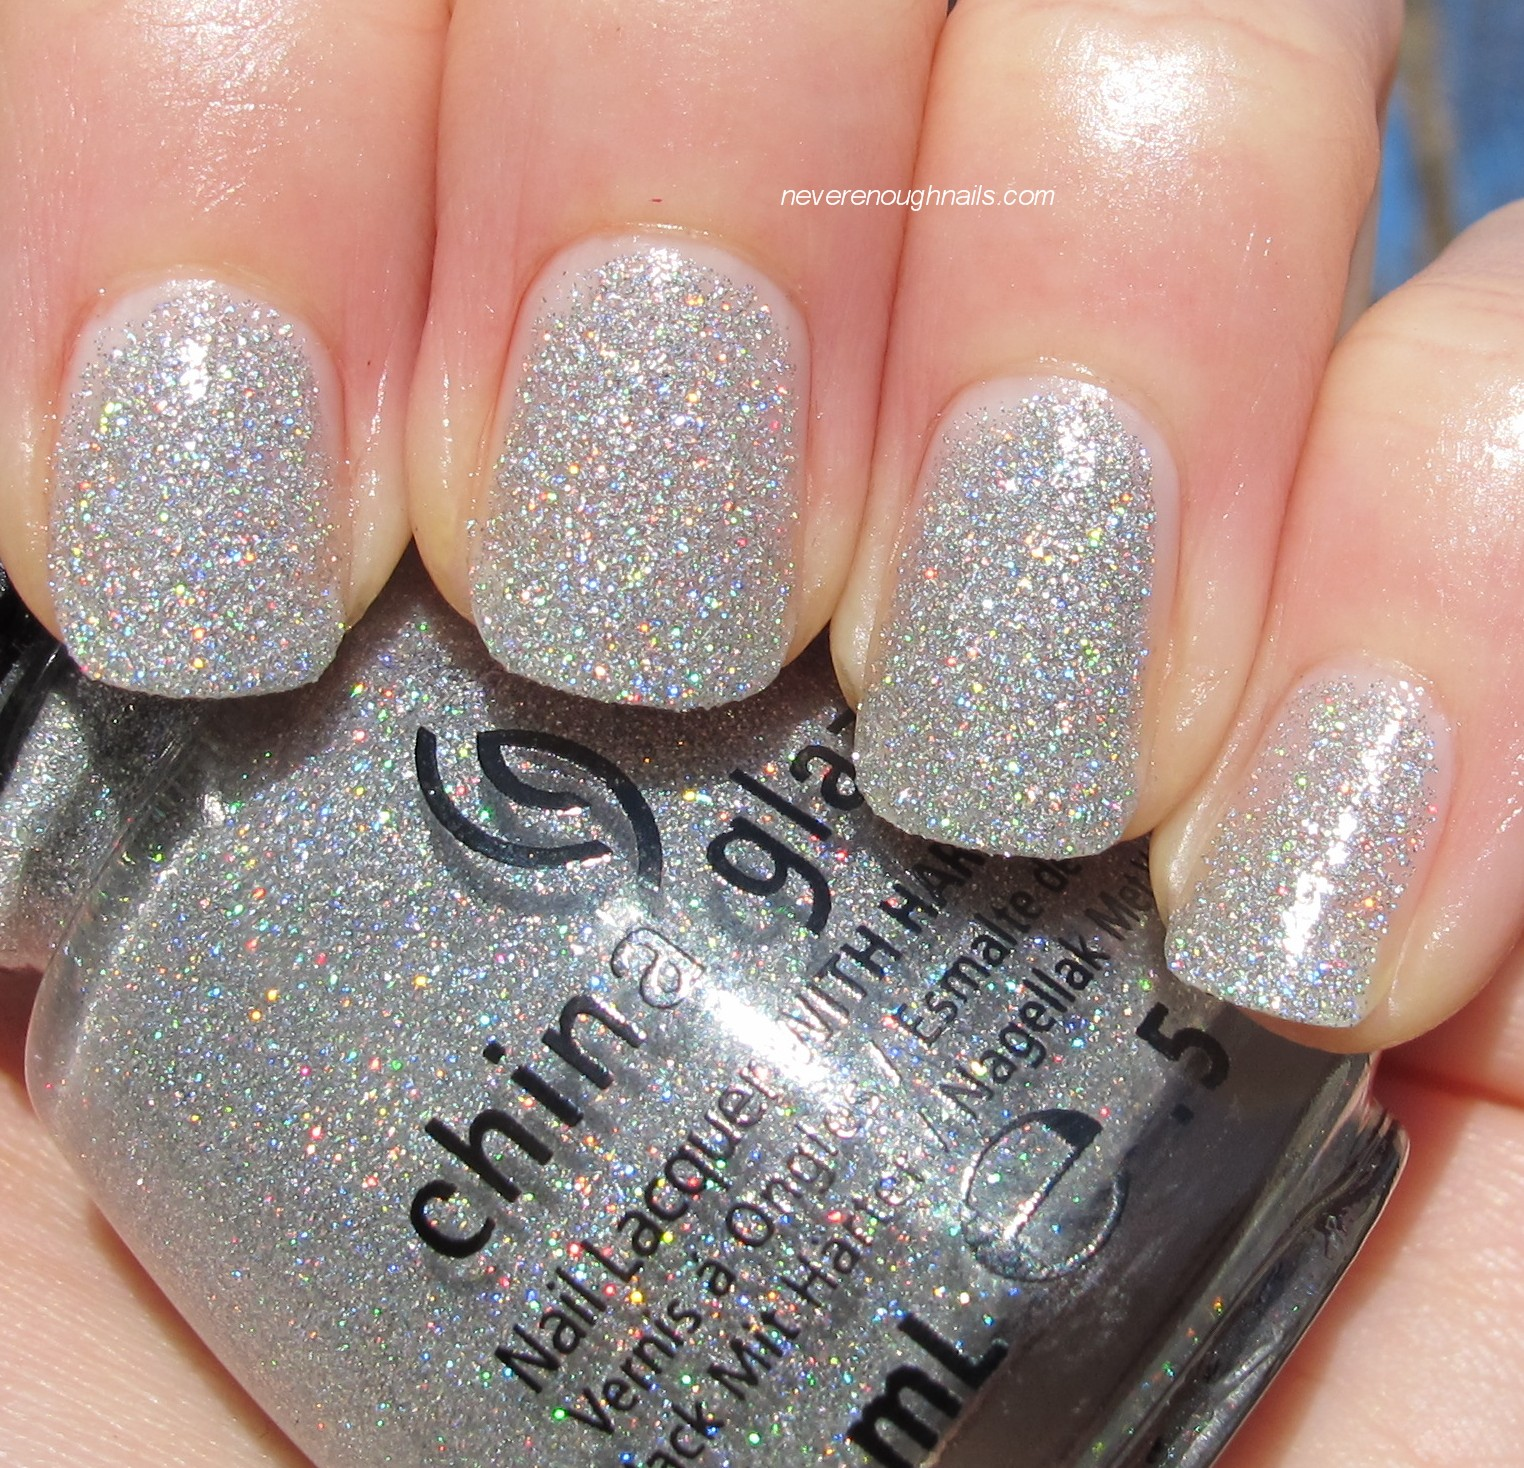 Never Enough Nails: Instead of real snow, I have China Glaze ...